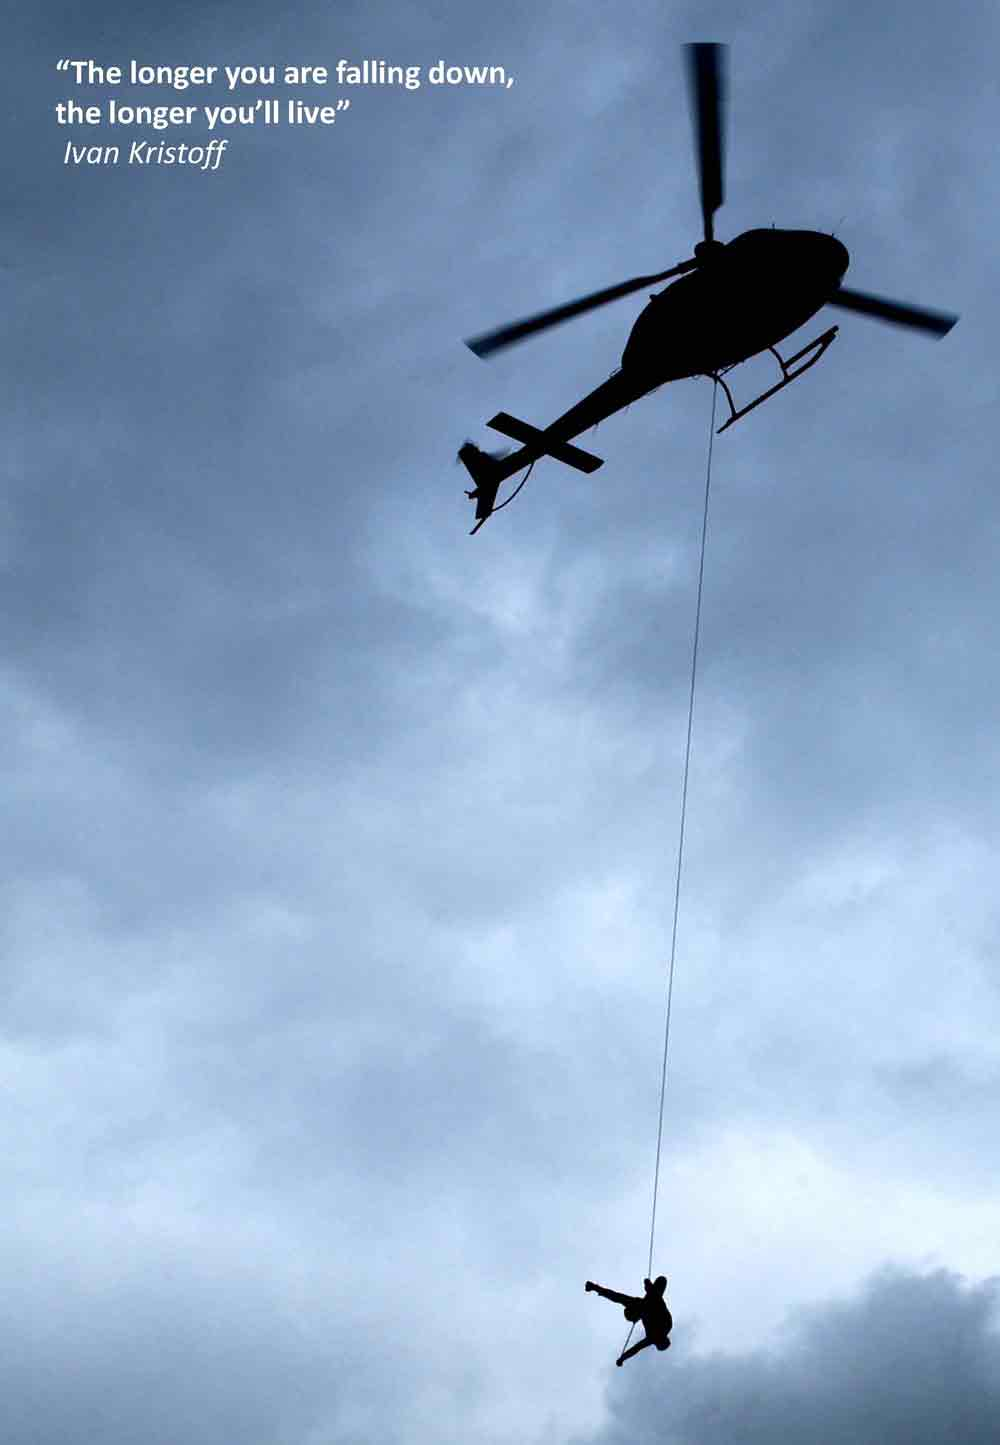 Helicopter rapppelling